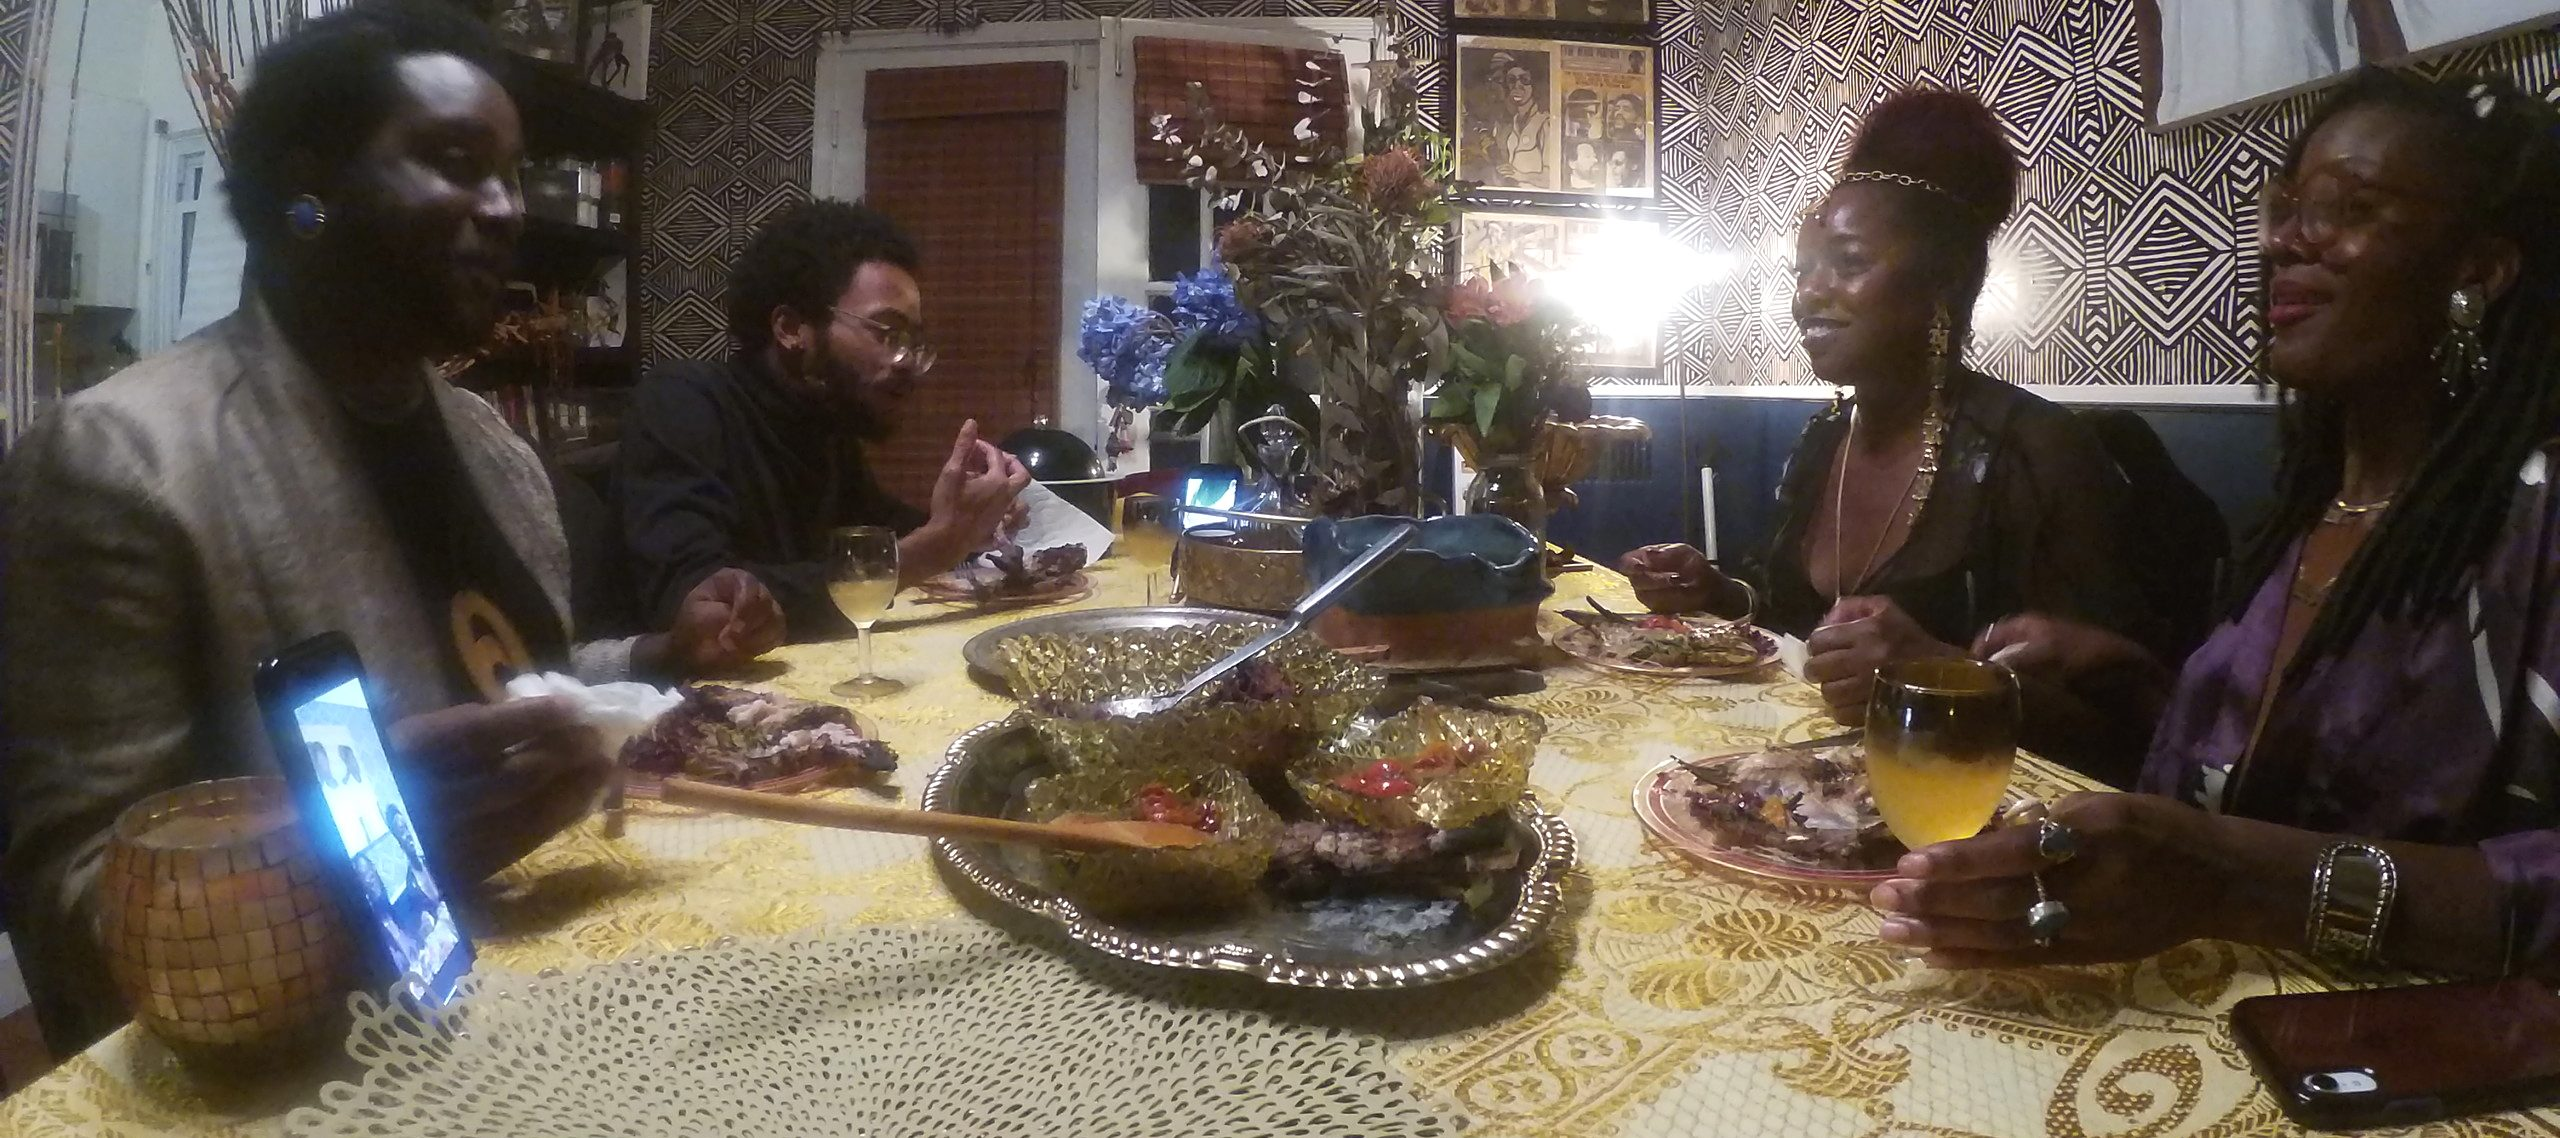 Four dark-skinned adults dressed up in suit jackets, nice tops, and jewelry sit around a table set with a yellow patterned tablecloth and meal, two on each side. A phone stands on the table, displaying other people calling in. The walls are covered in art and patterned wallpaper.